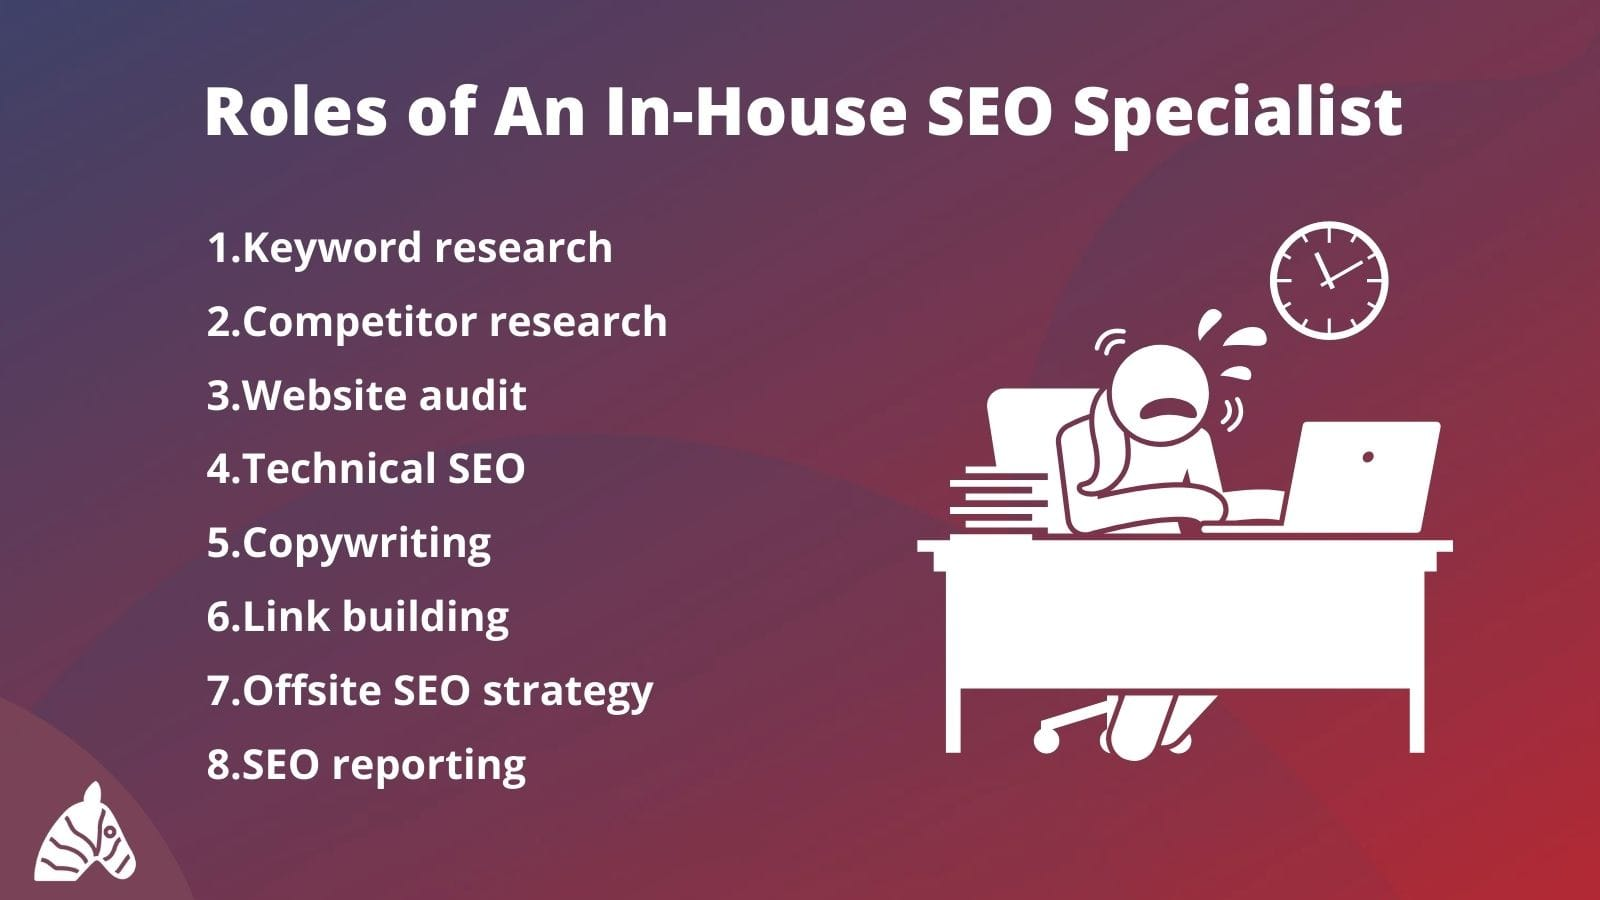 the many roles of an in-house SEO specialist